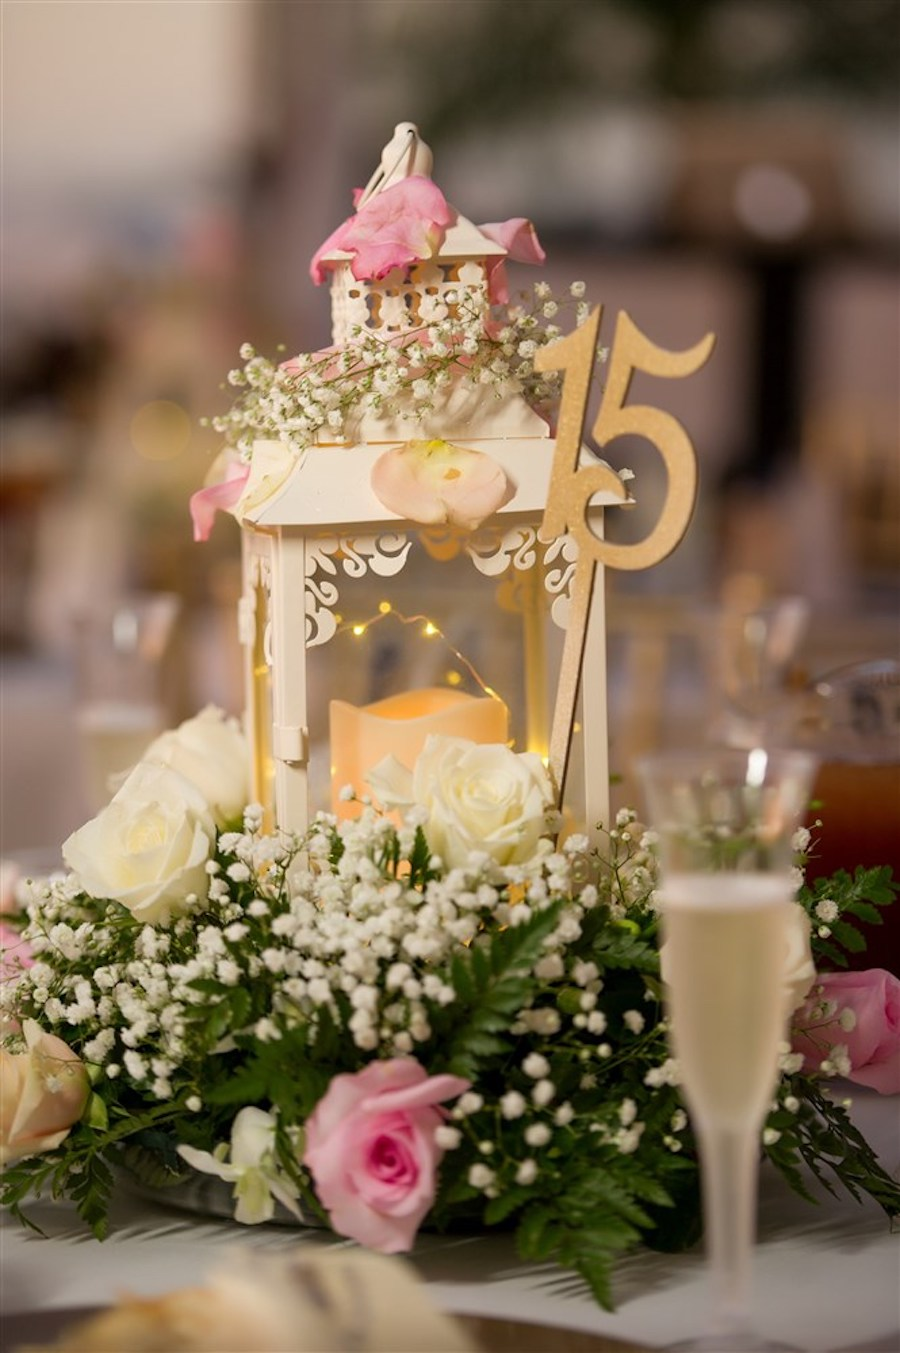 White and Pink Rose with Baby's Breath and Green Fern Centerpiece with Vintage Candle and Gold Numbered Table Marker   Tampa Bay Wedding Reception Decor